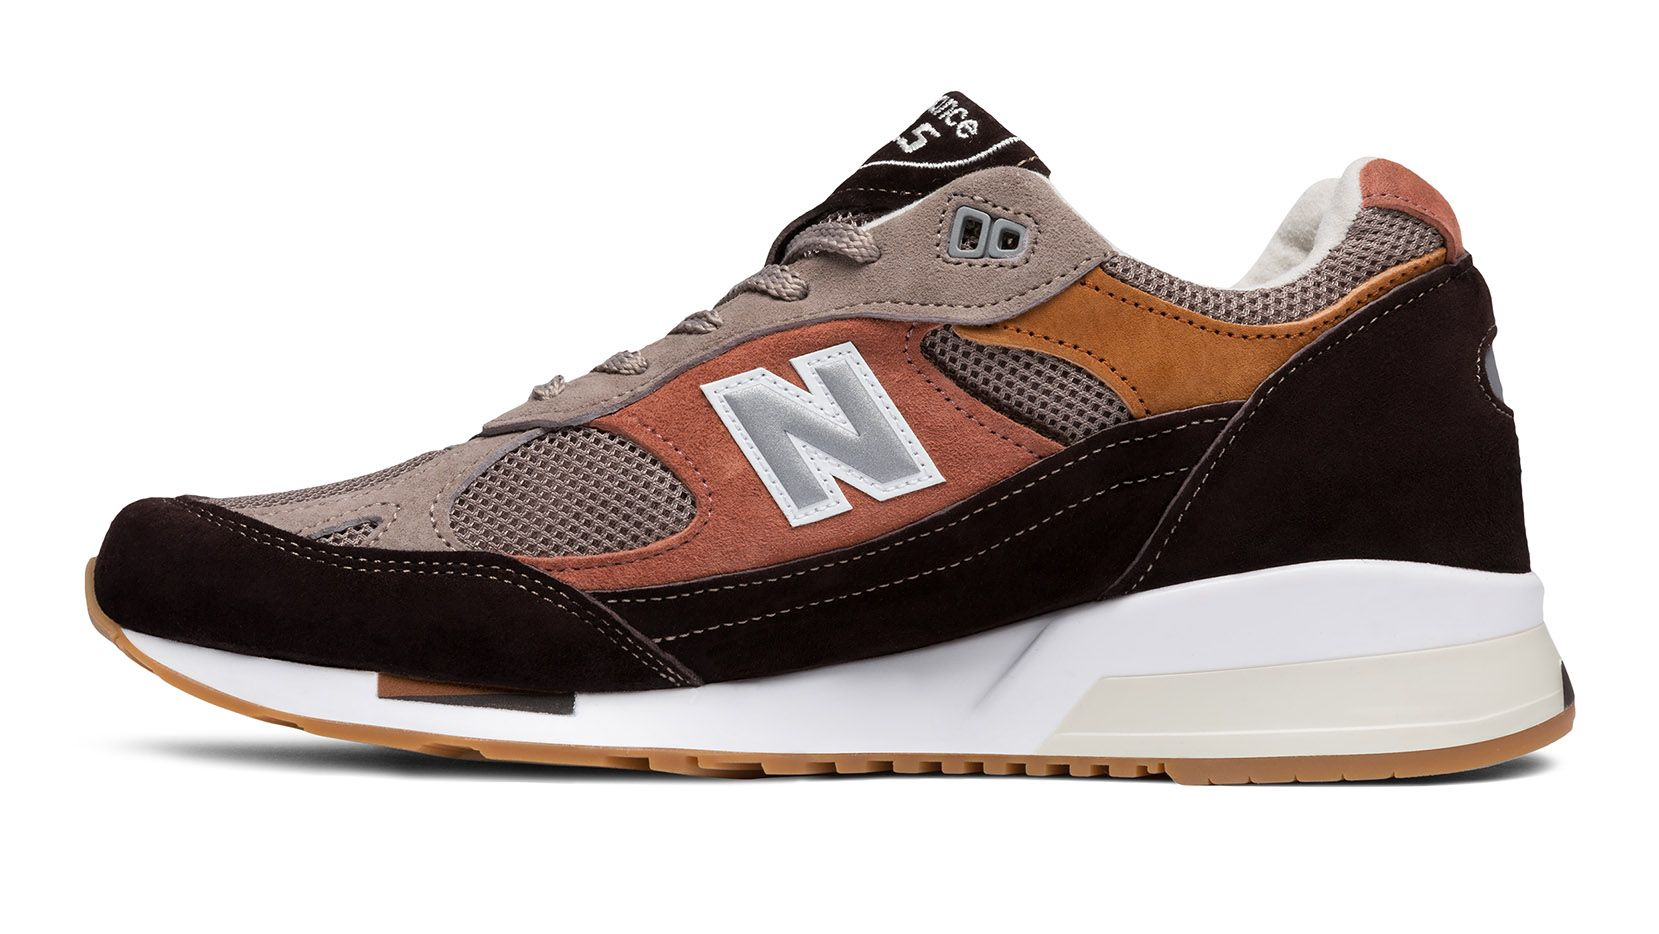 New Balance 991.5 Solway Excursion Pack Made in UK